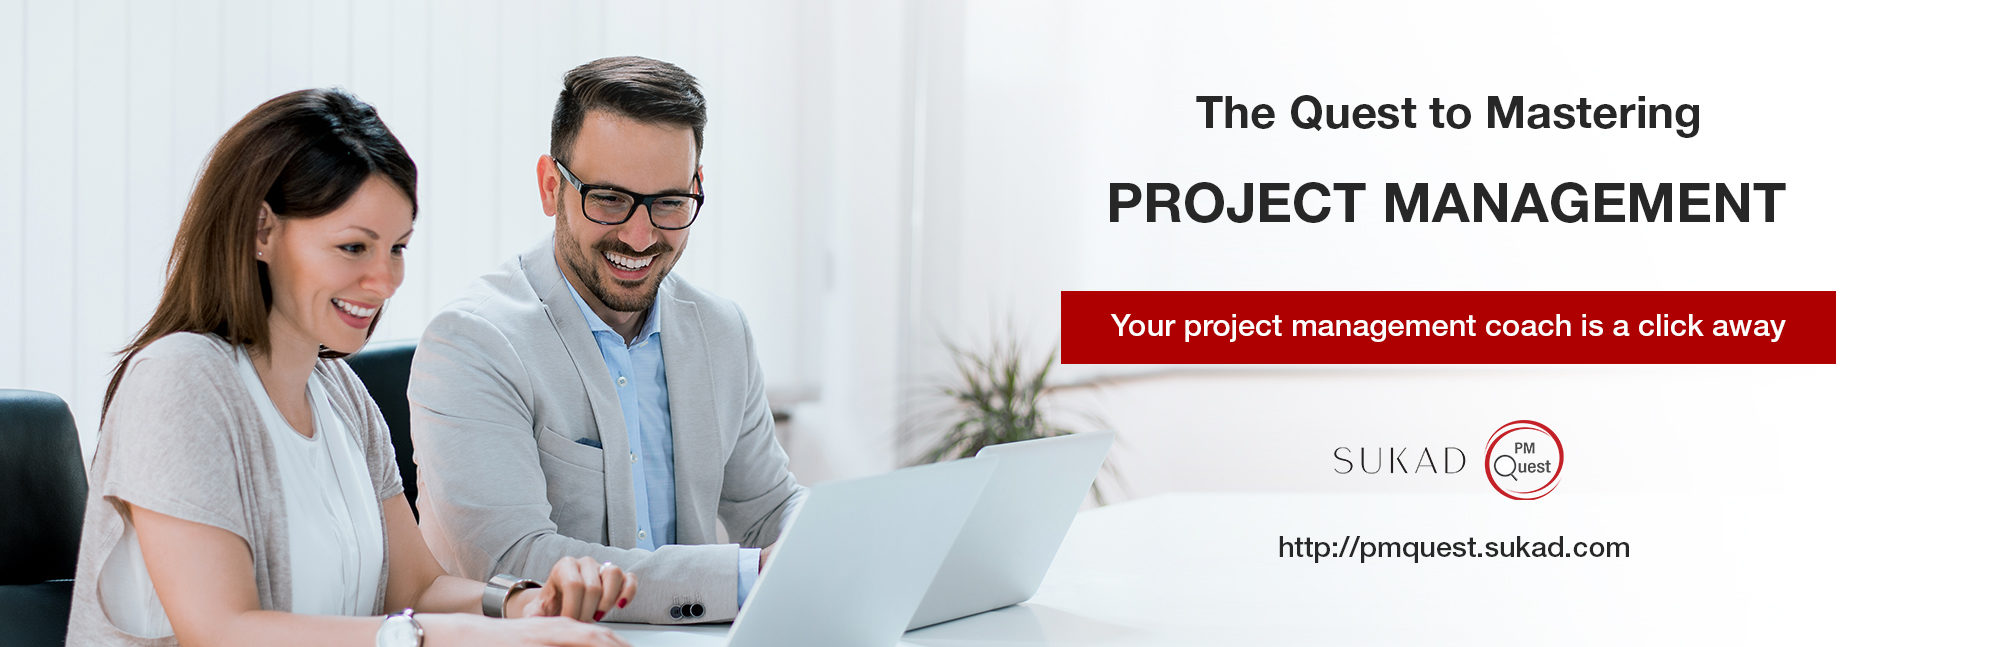 Applying Project Management, The SUKAD Way